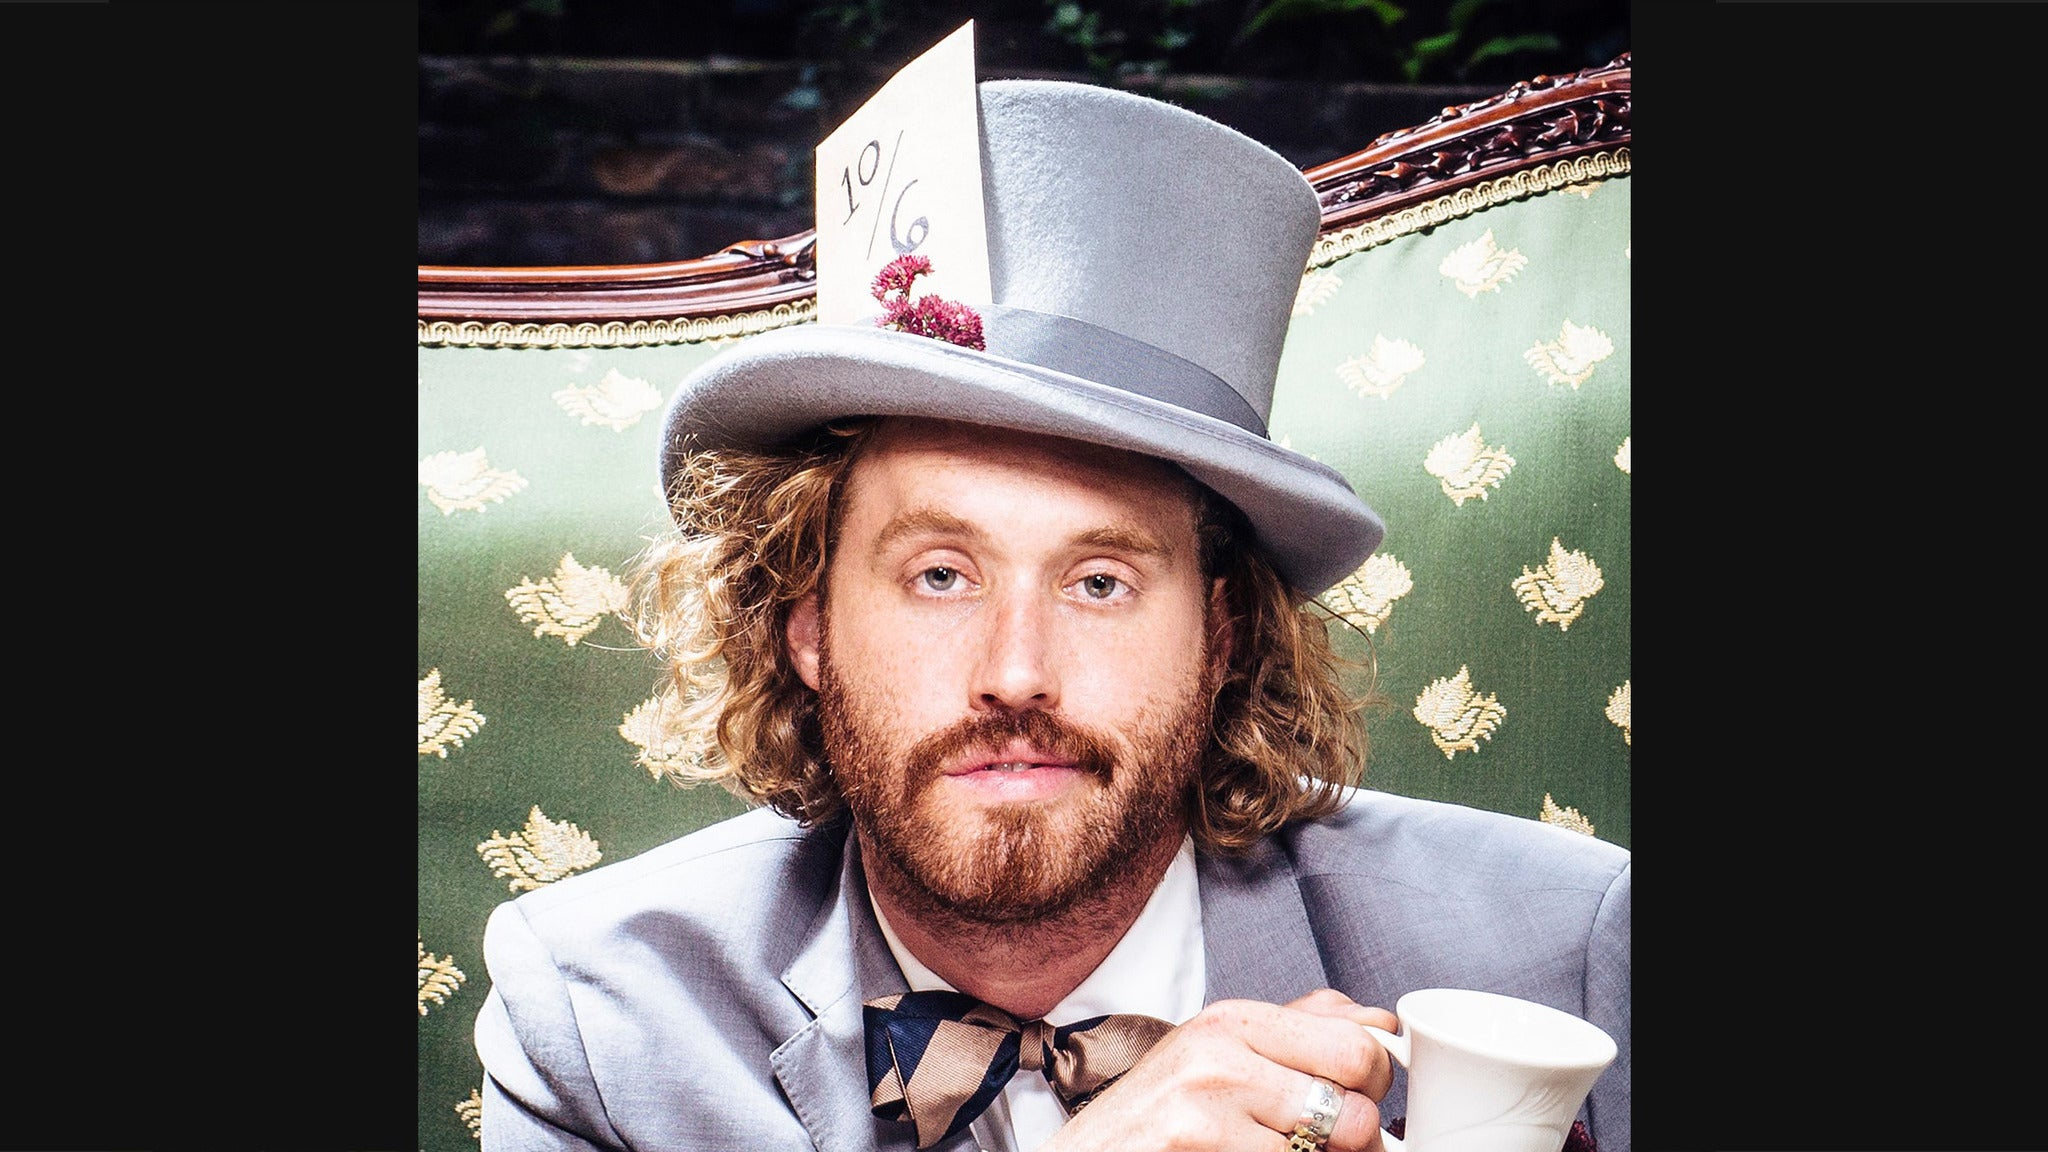 T.J. Miller at Chicago Improv - Schaumburg, IL 60173